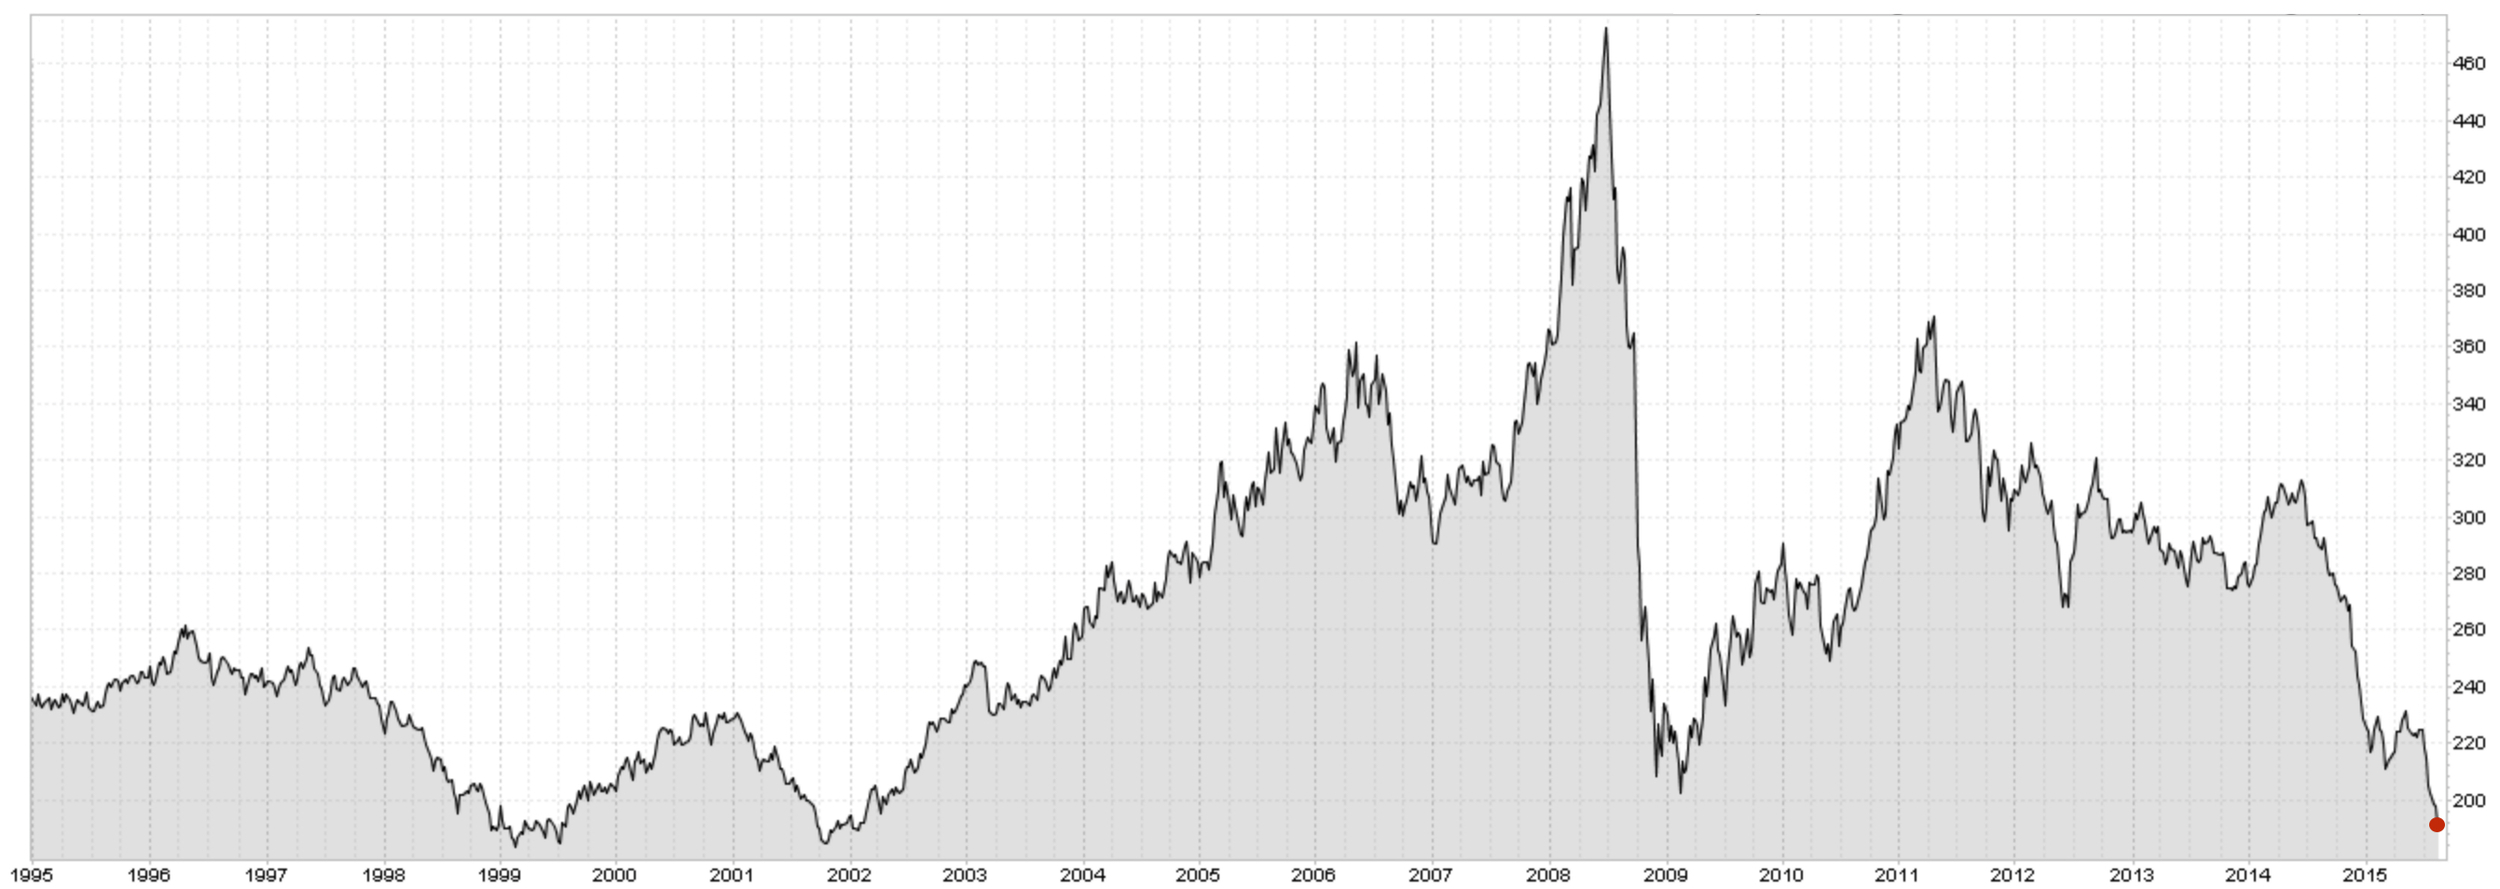 CRB INDEX HISTORICAL CHART (1995 - TODAY)